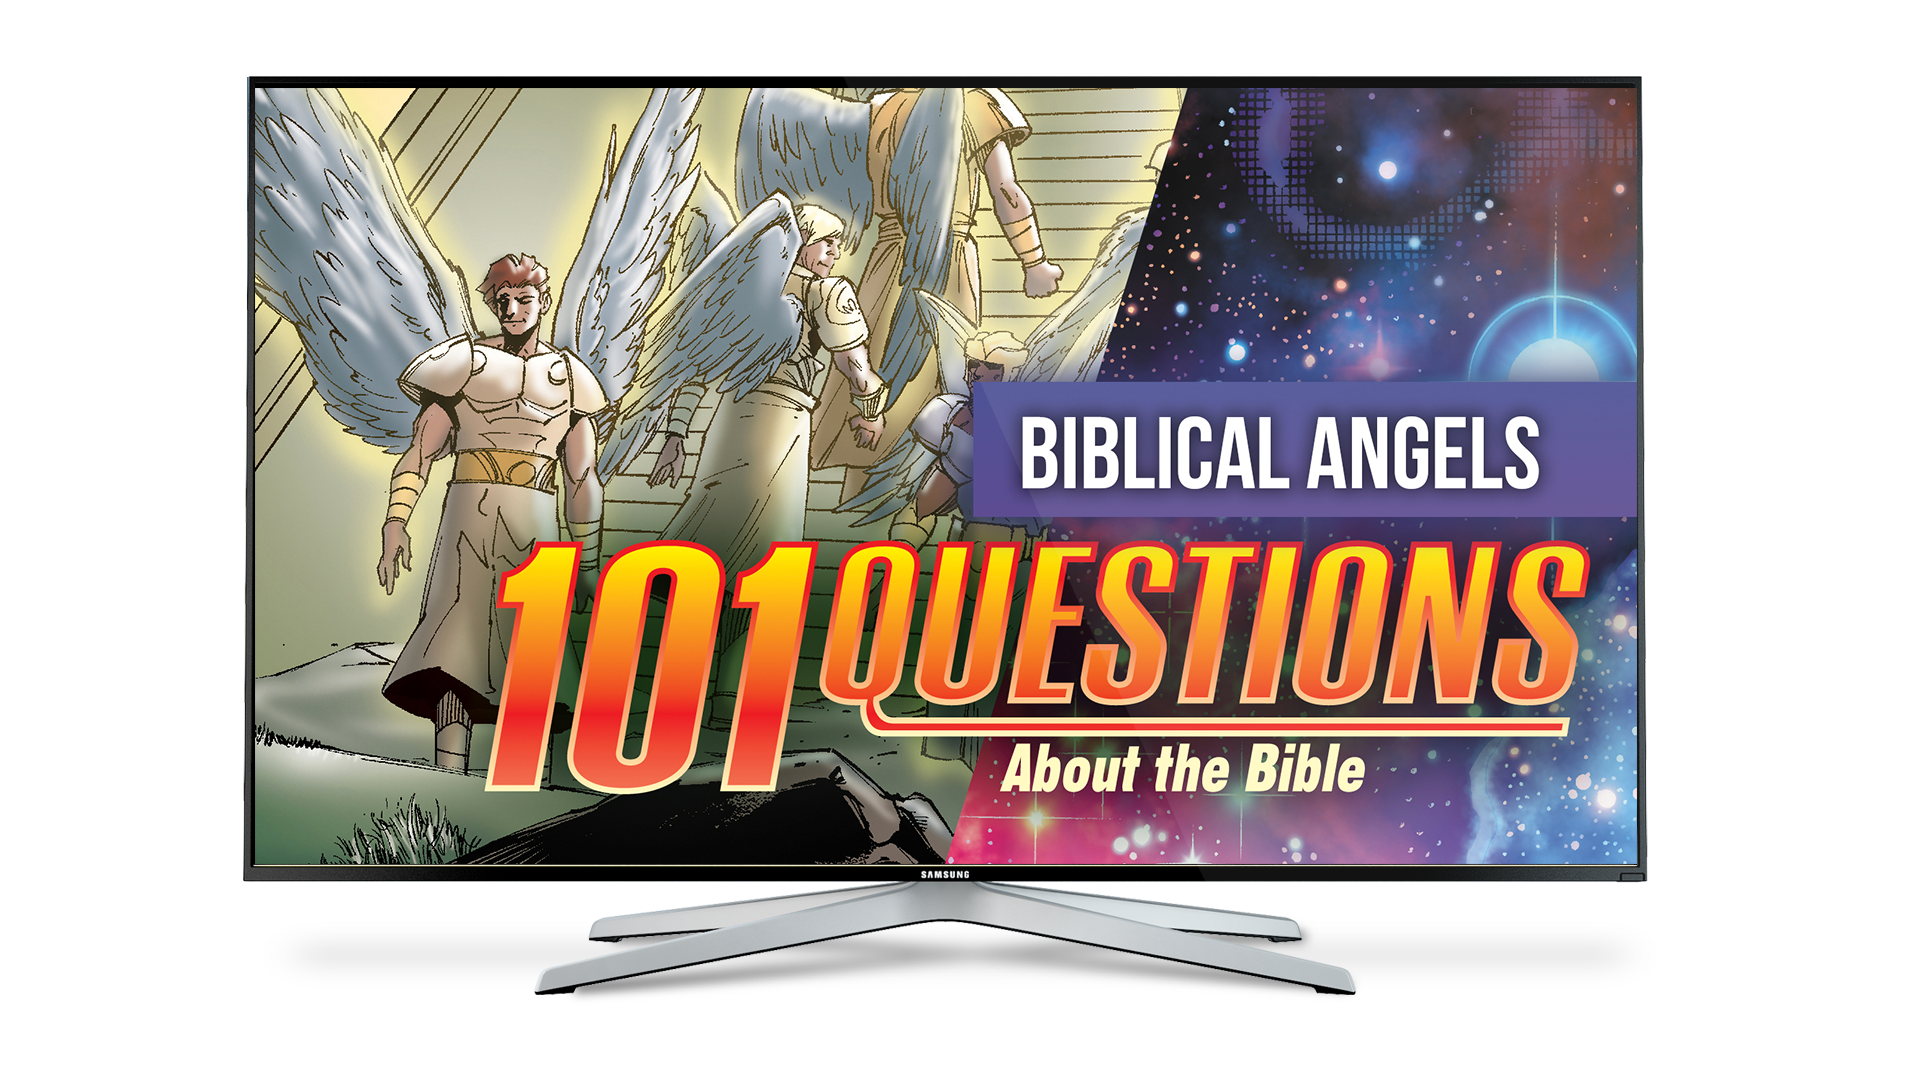 101 Questions: #14 What Does the Bible Say About Angels? - Kingstone Comics